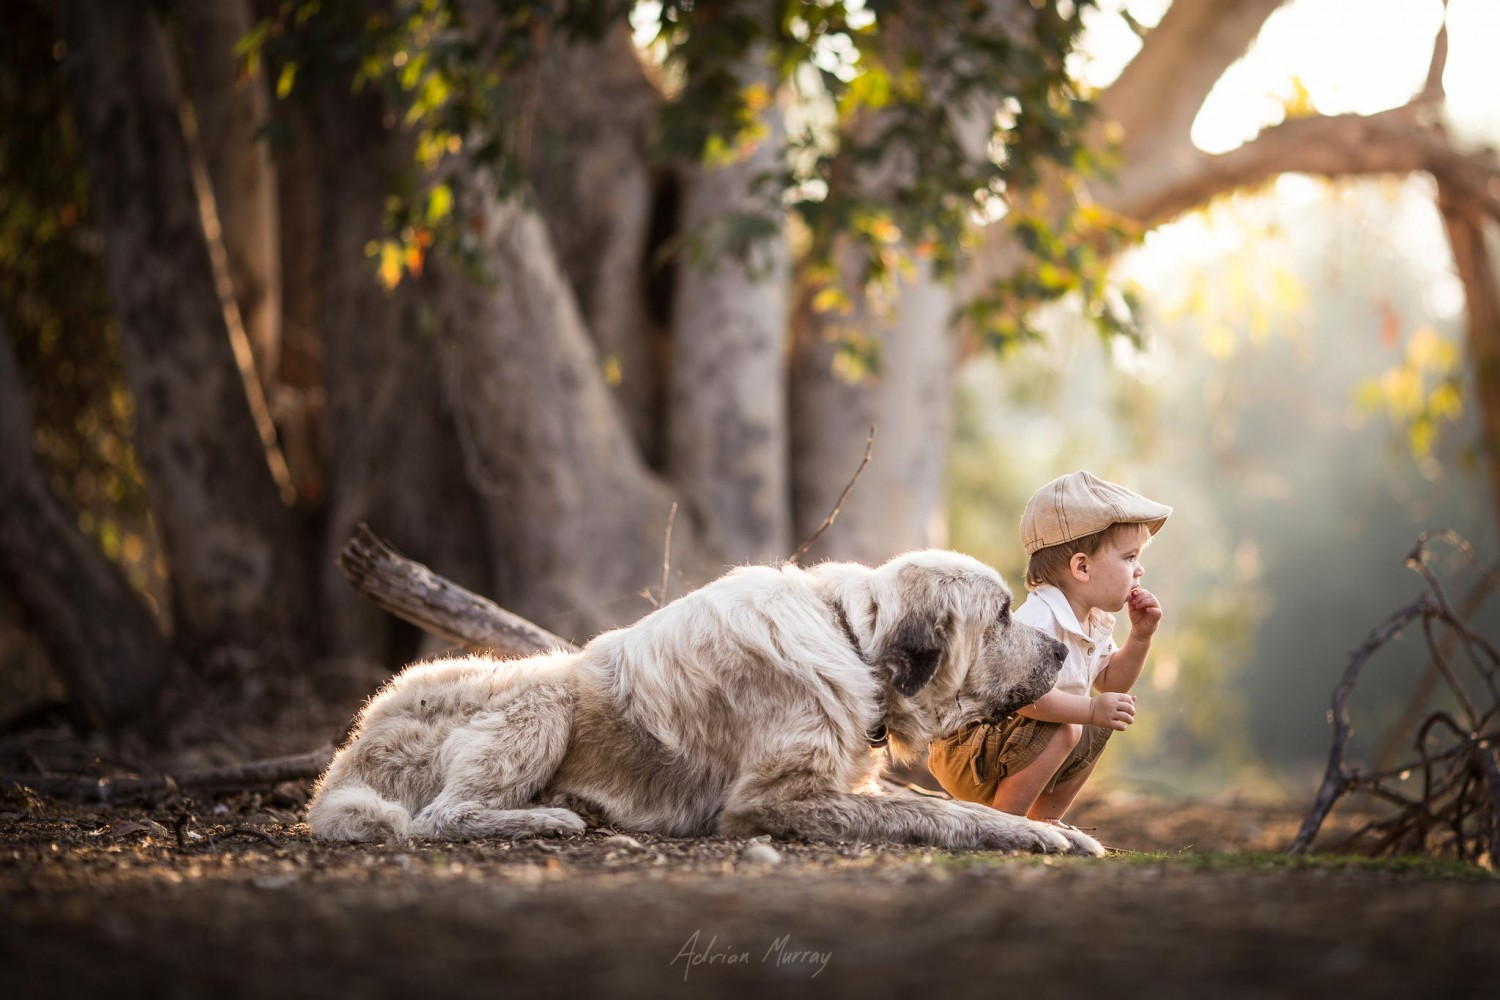 500px ISO Beautiful Photography Incredible StoriesTips For Capturing Magical Portraits Of